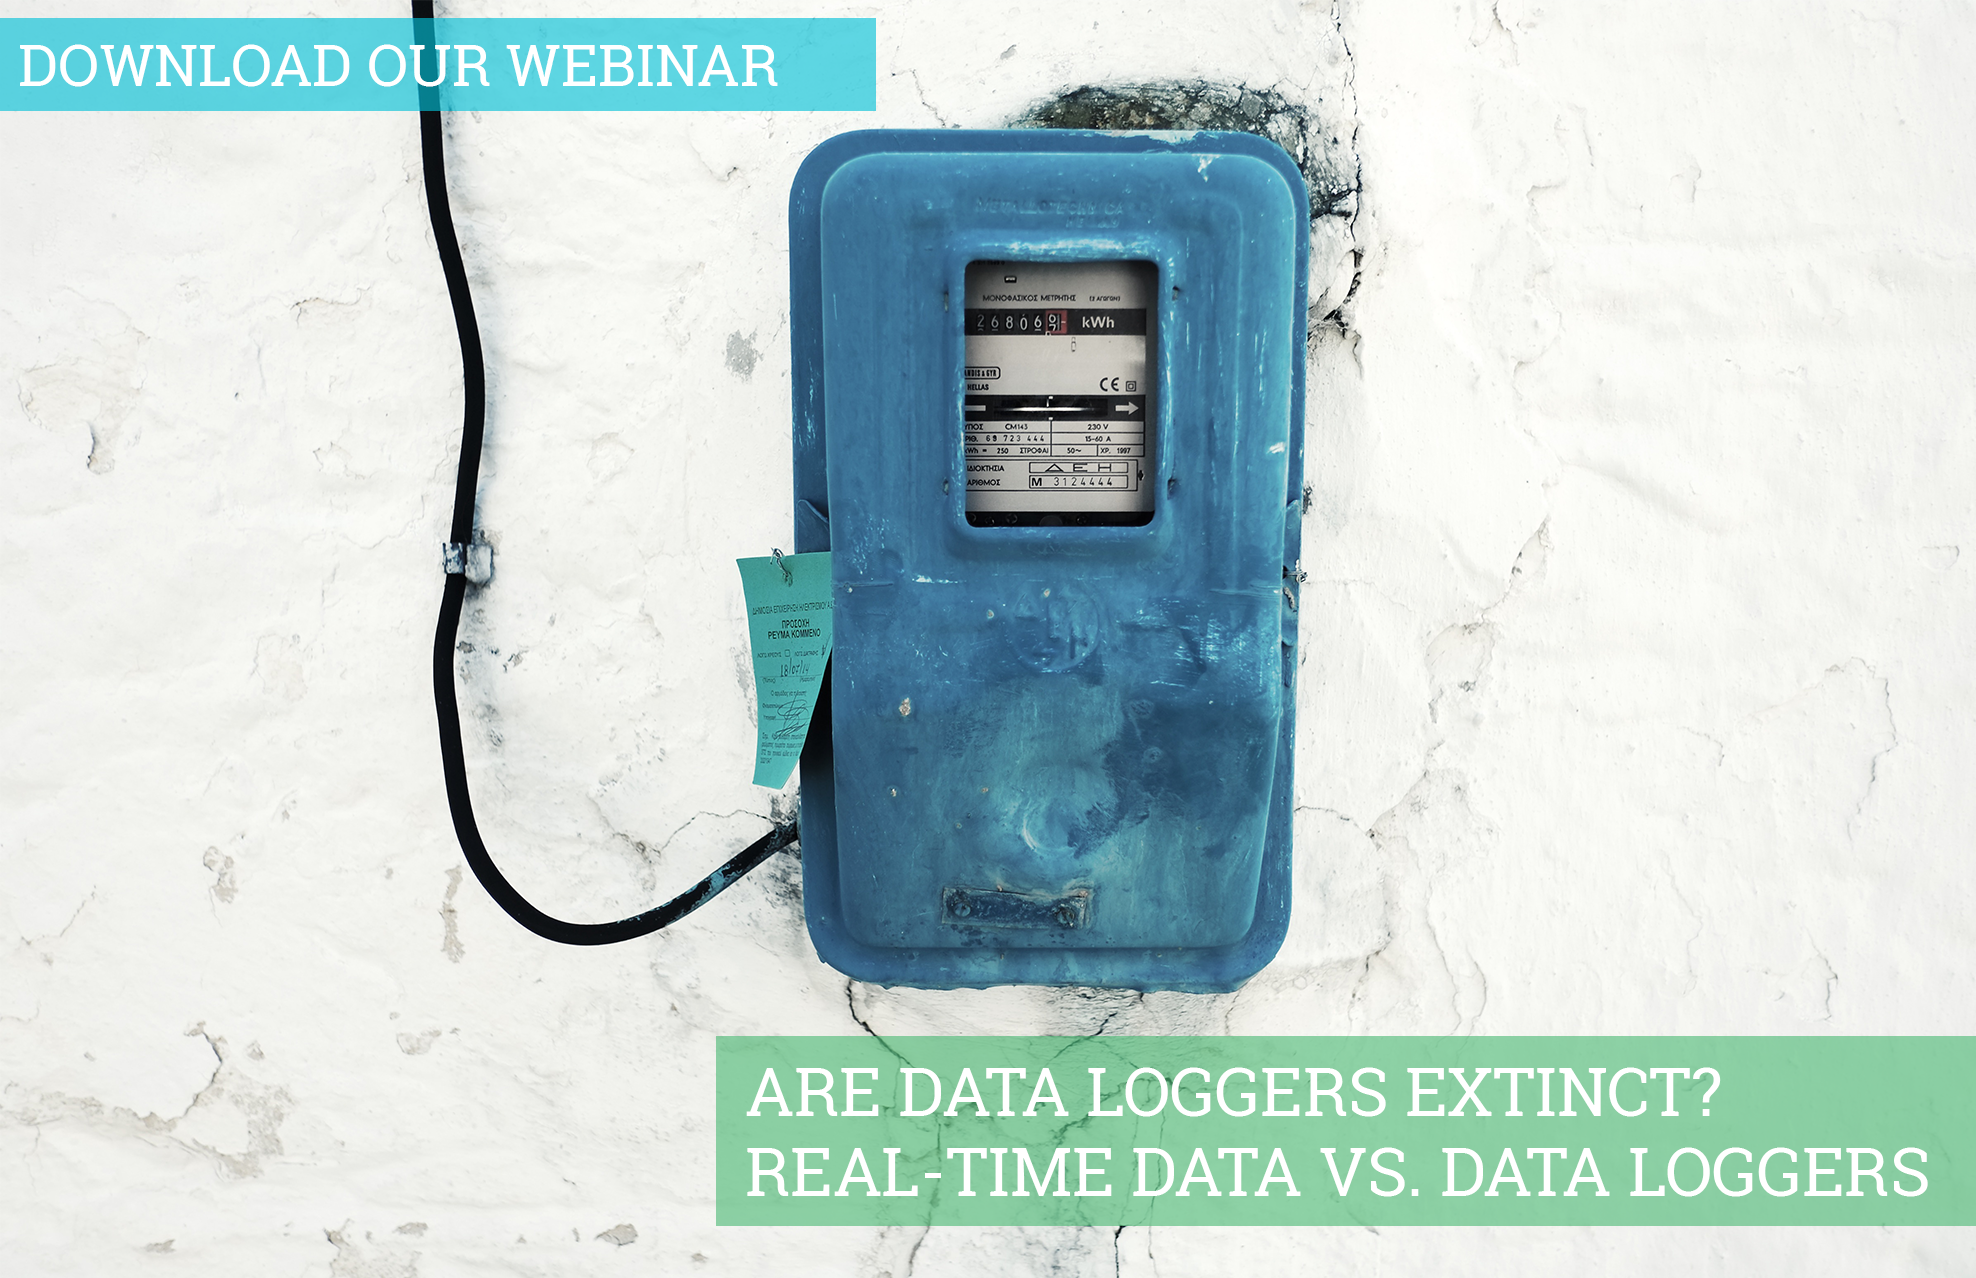 Real-Time Data Vs. Data Loggers